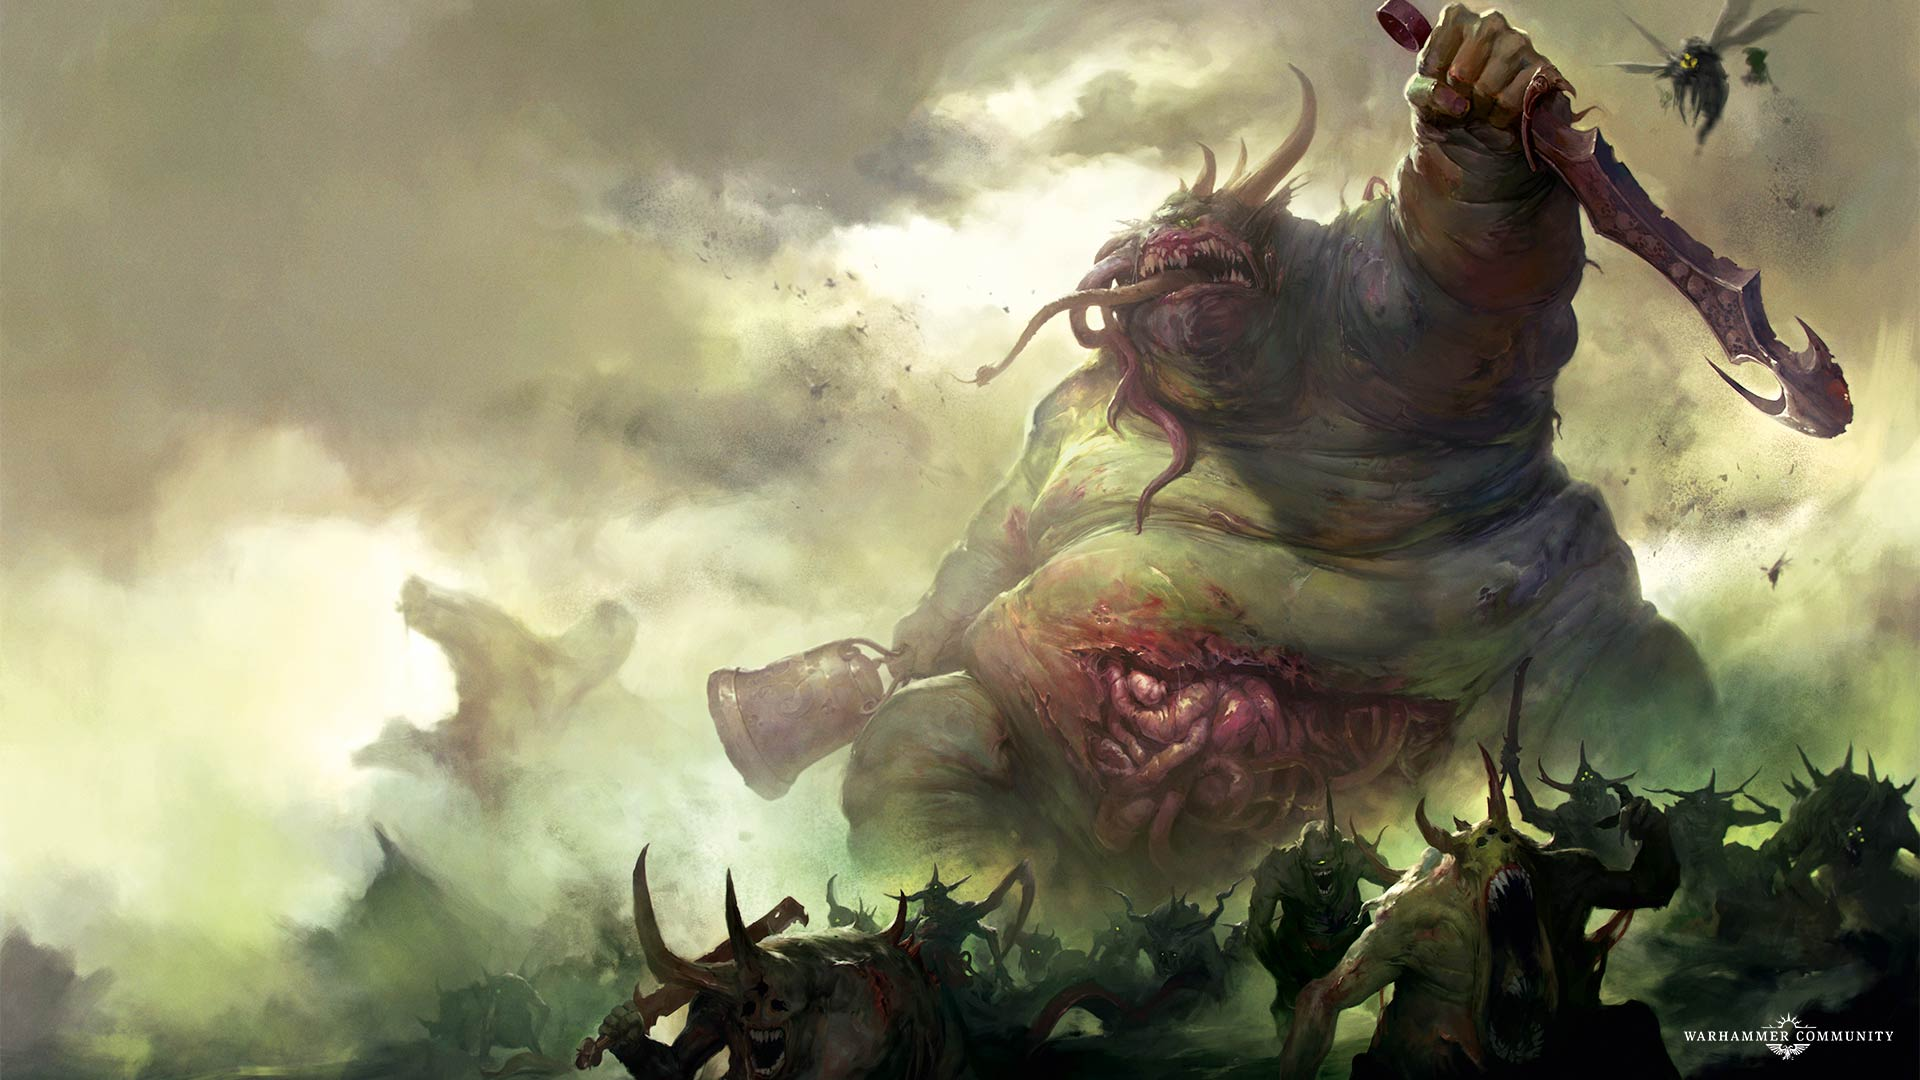 The Second Day of Nurgle: Great Unclean One - Warhammer Community